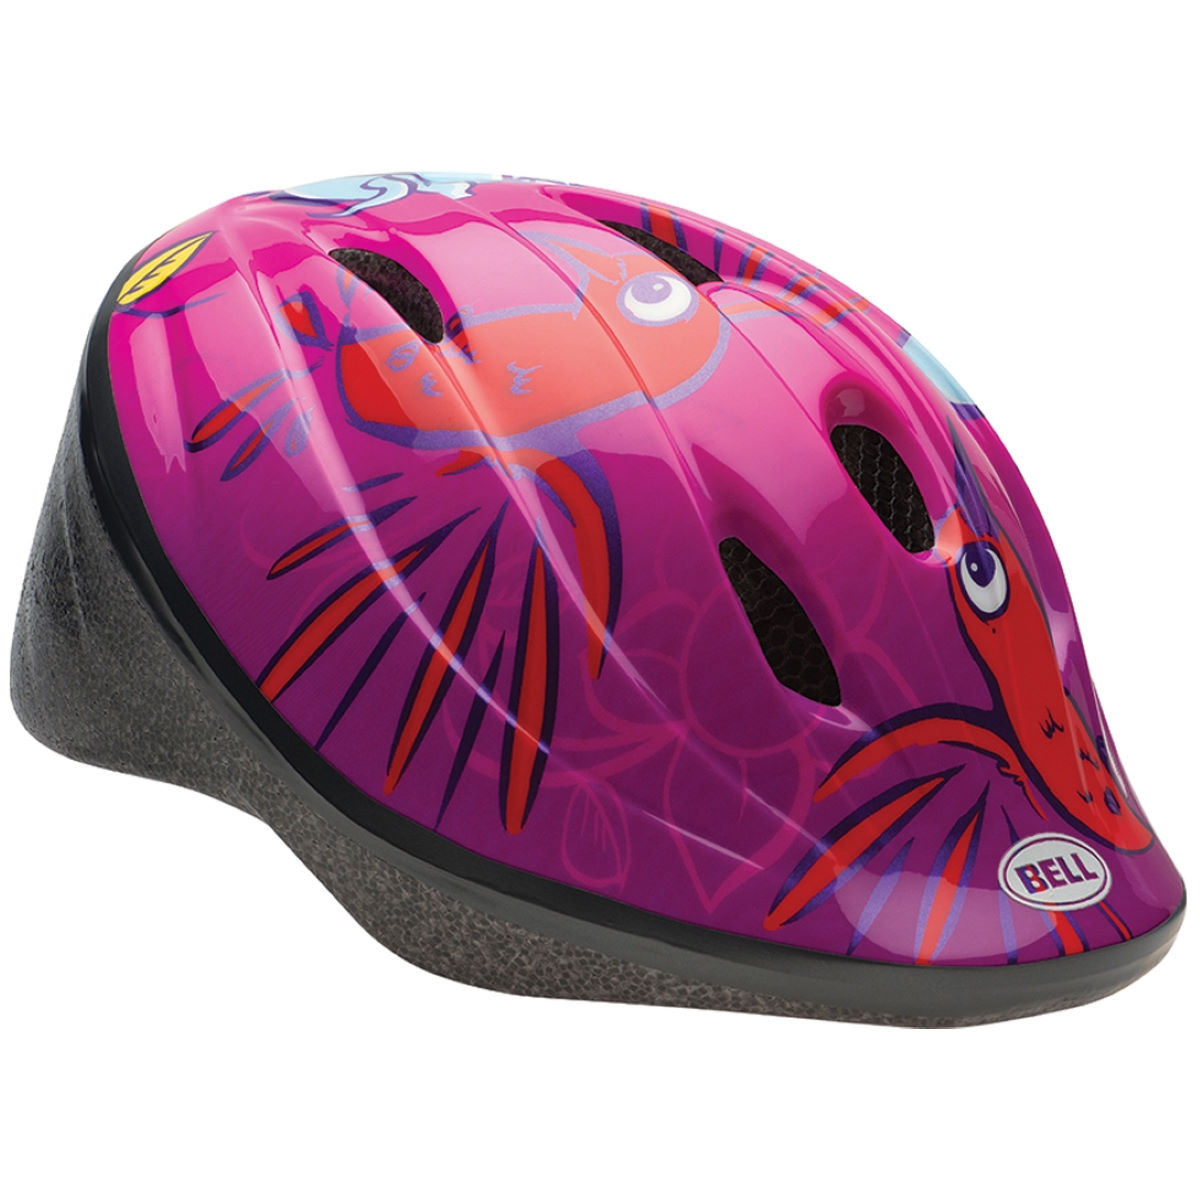 Casque Enfant Bell Bellino - S Pink Humming Birds